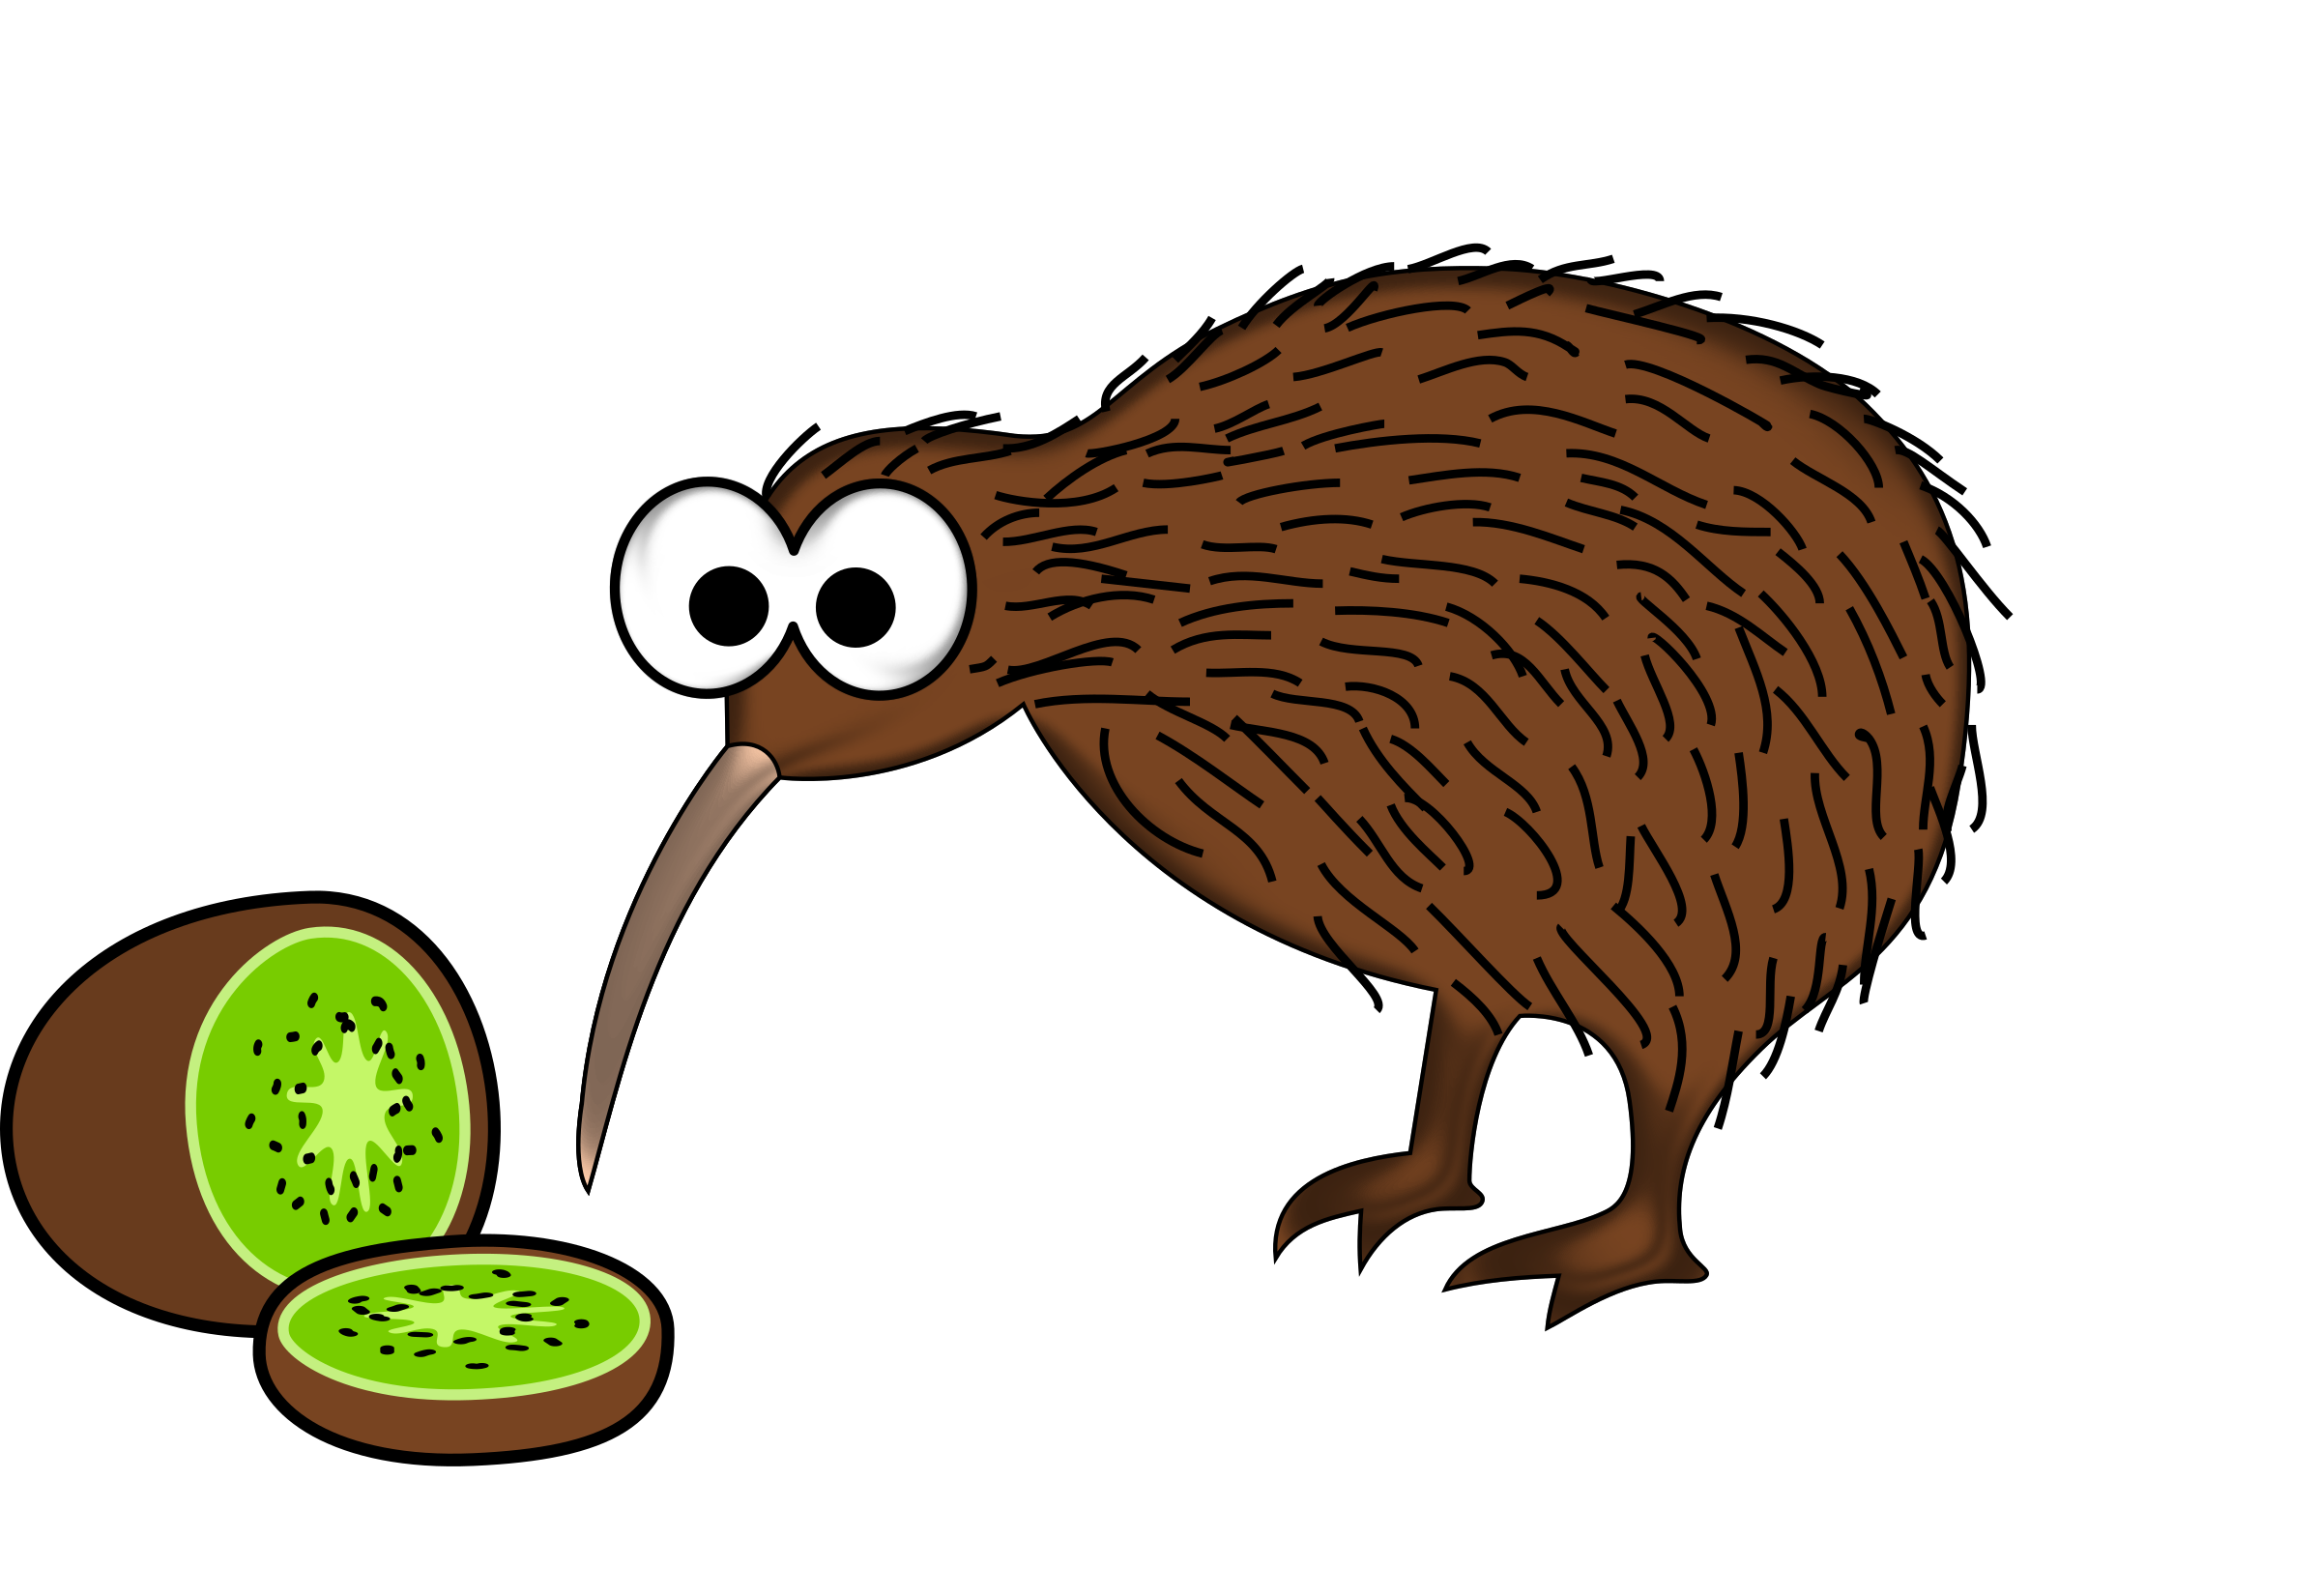 Cartoon kiwi bird with kiwi fruit by Juhele